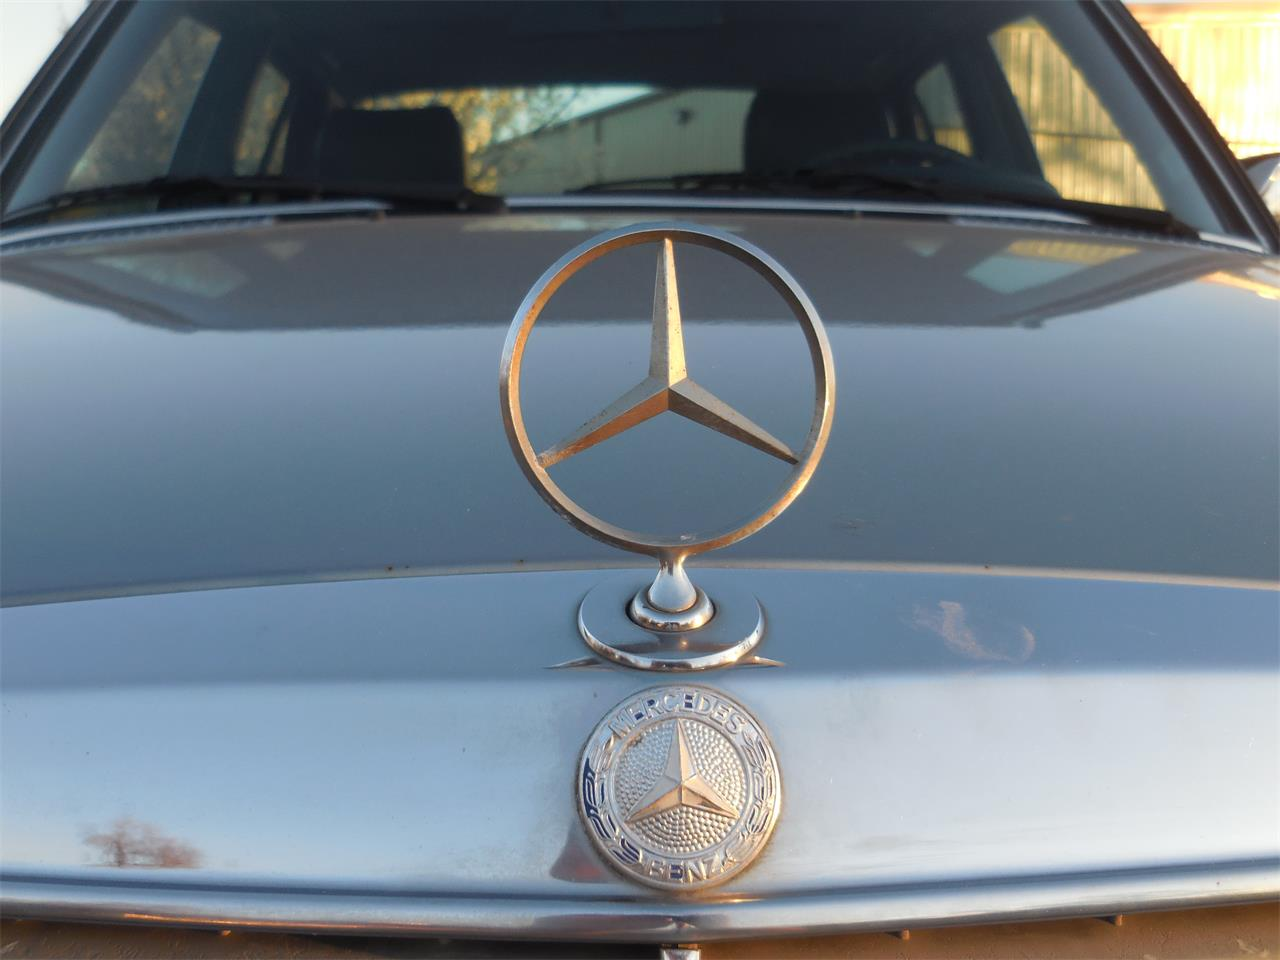 1982 Mercedes-Benz 300D for sale in Anderson, CA – photo 15